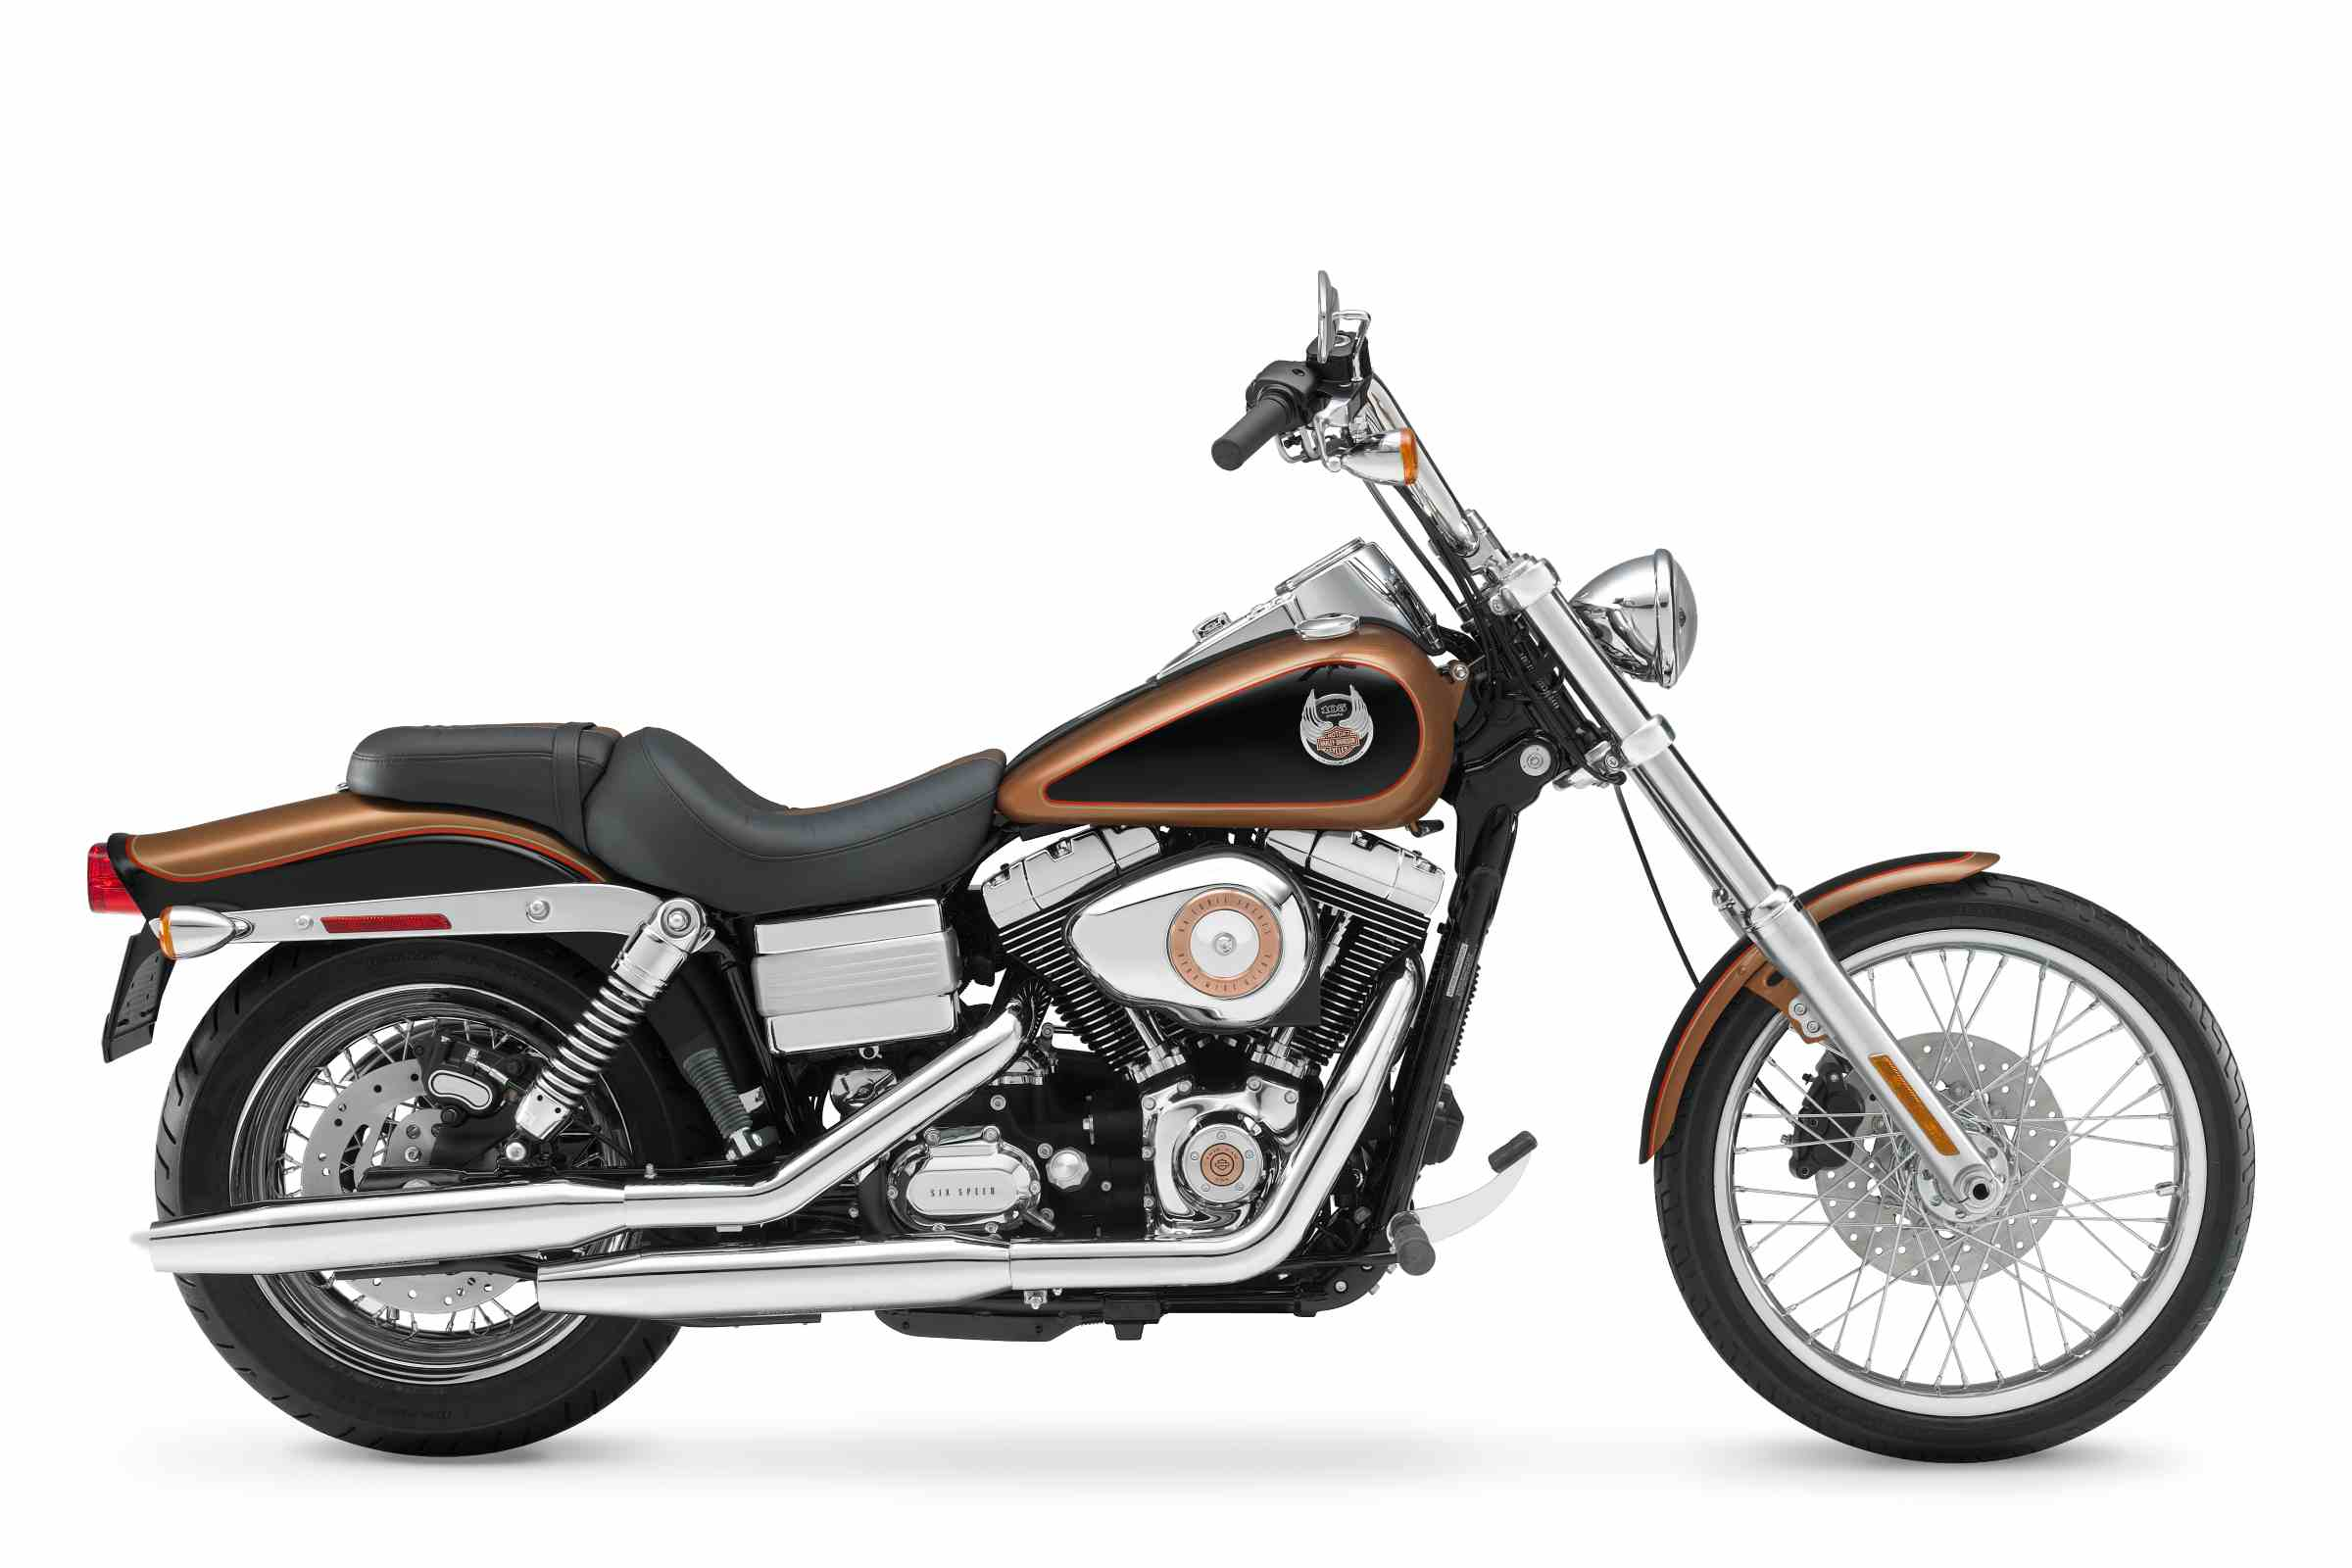 FXDWG Dyna Wide Glide Anniversary Model